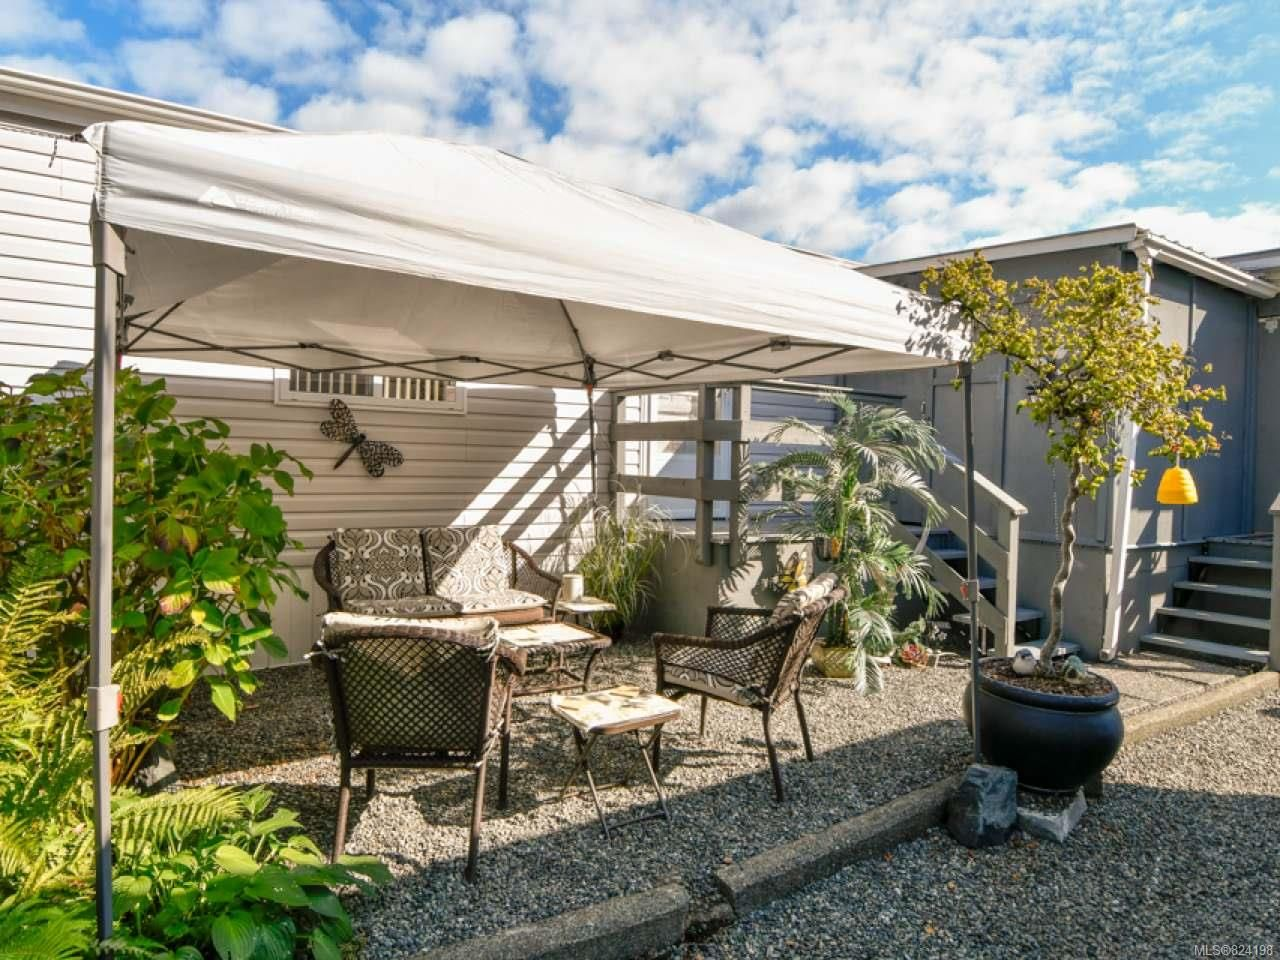 Photo 9: Photos: 38 951 Homewood Rd in CAMPBELL RIVER: CR Campbell River Central Manufactured Home for sale (Campbell River)  : MLS®# 824198